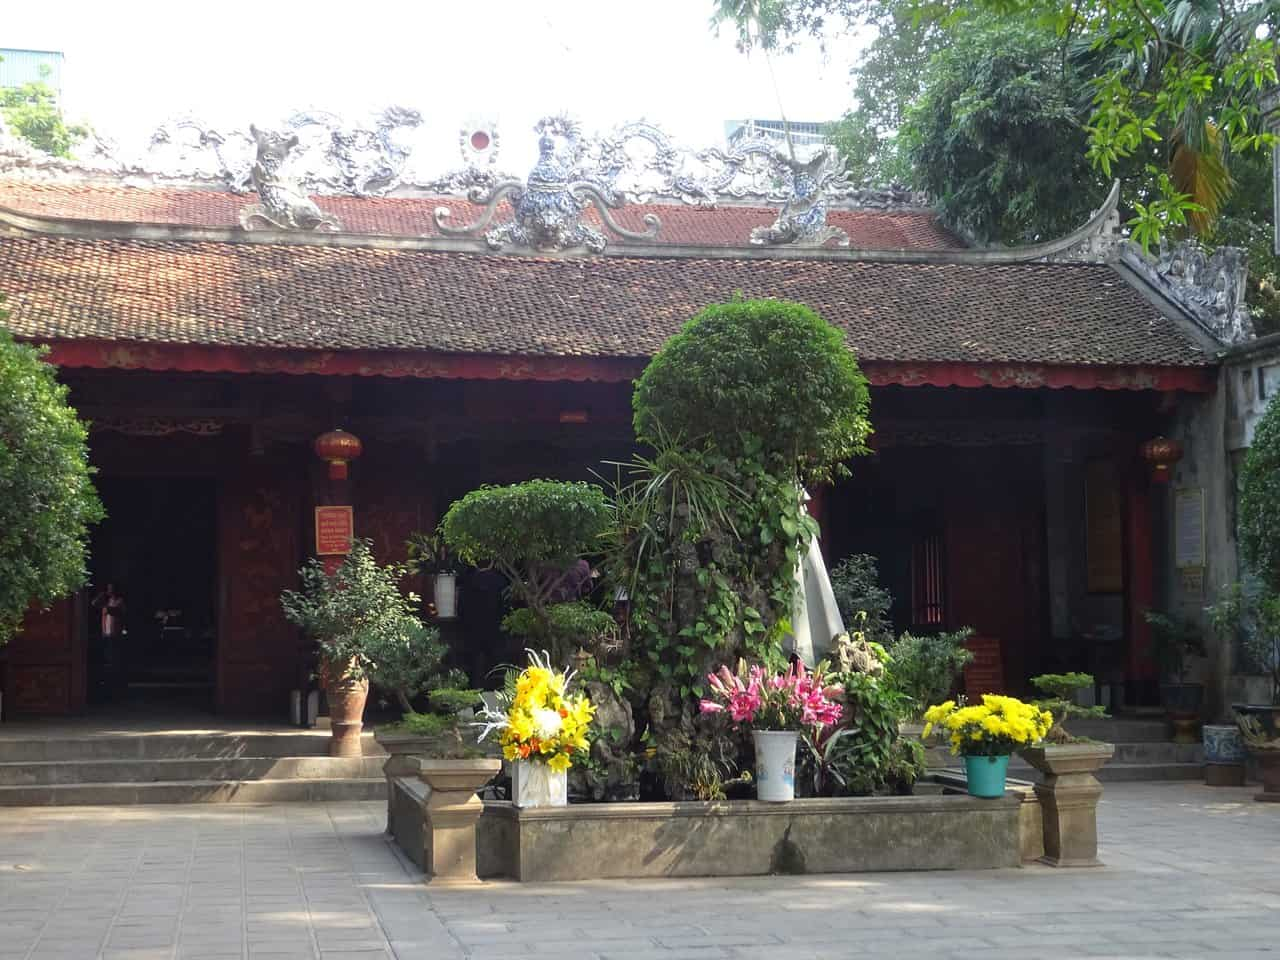 What to see and do at Quan Thanh temple